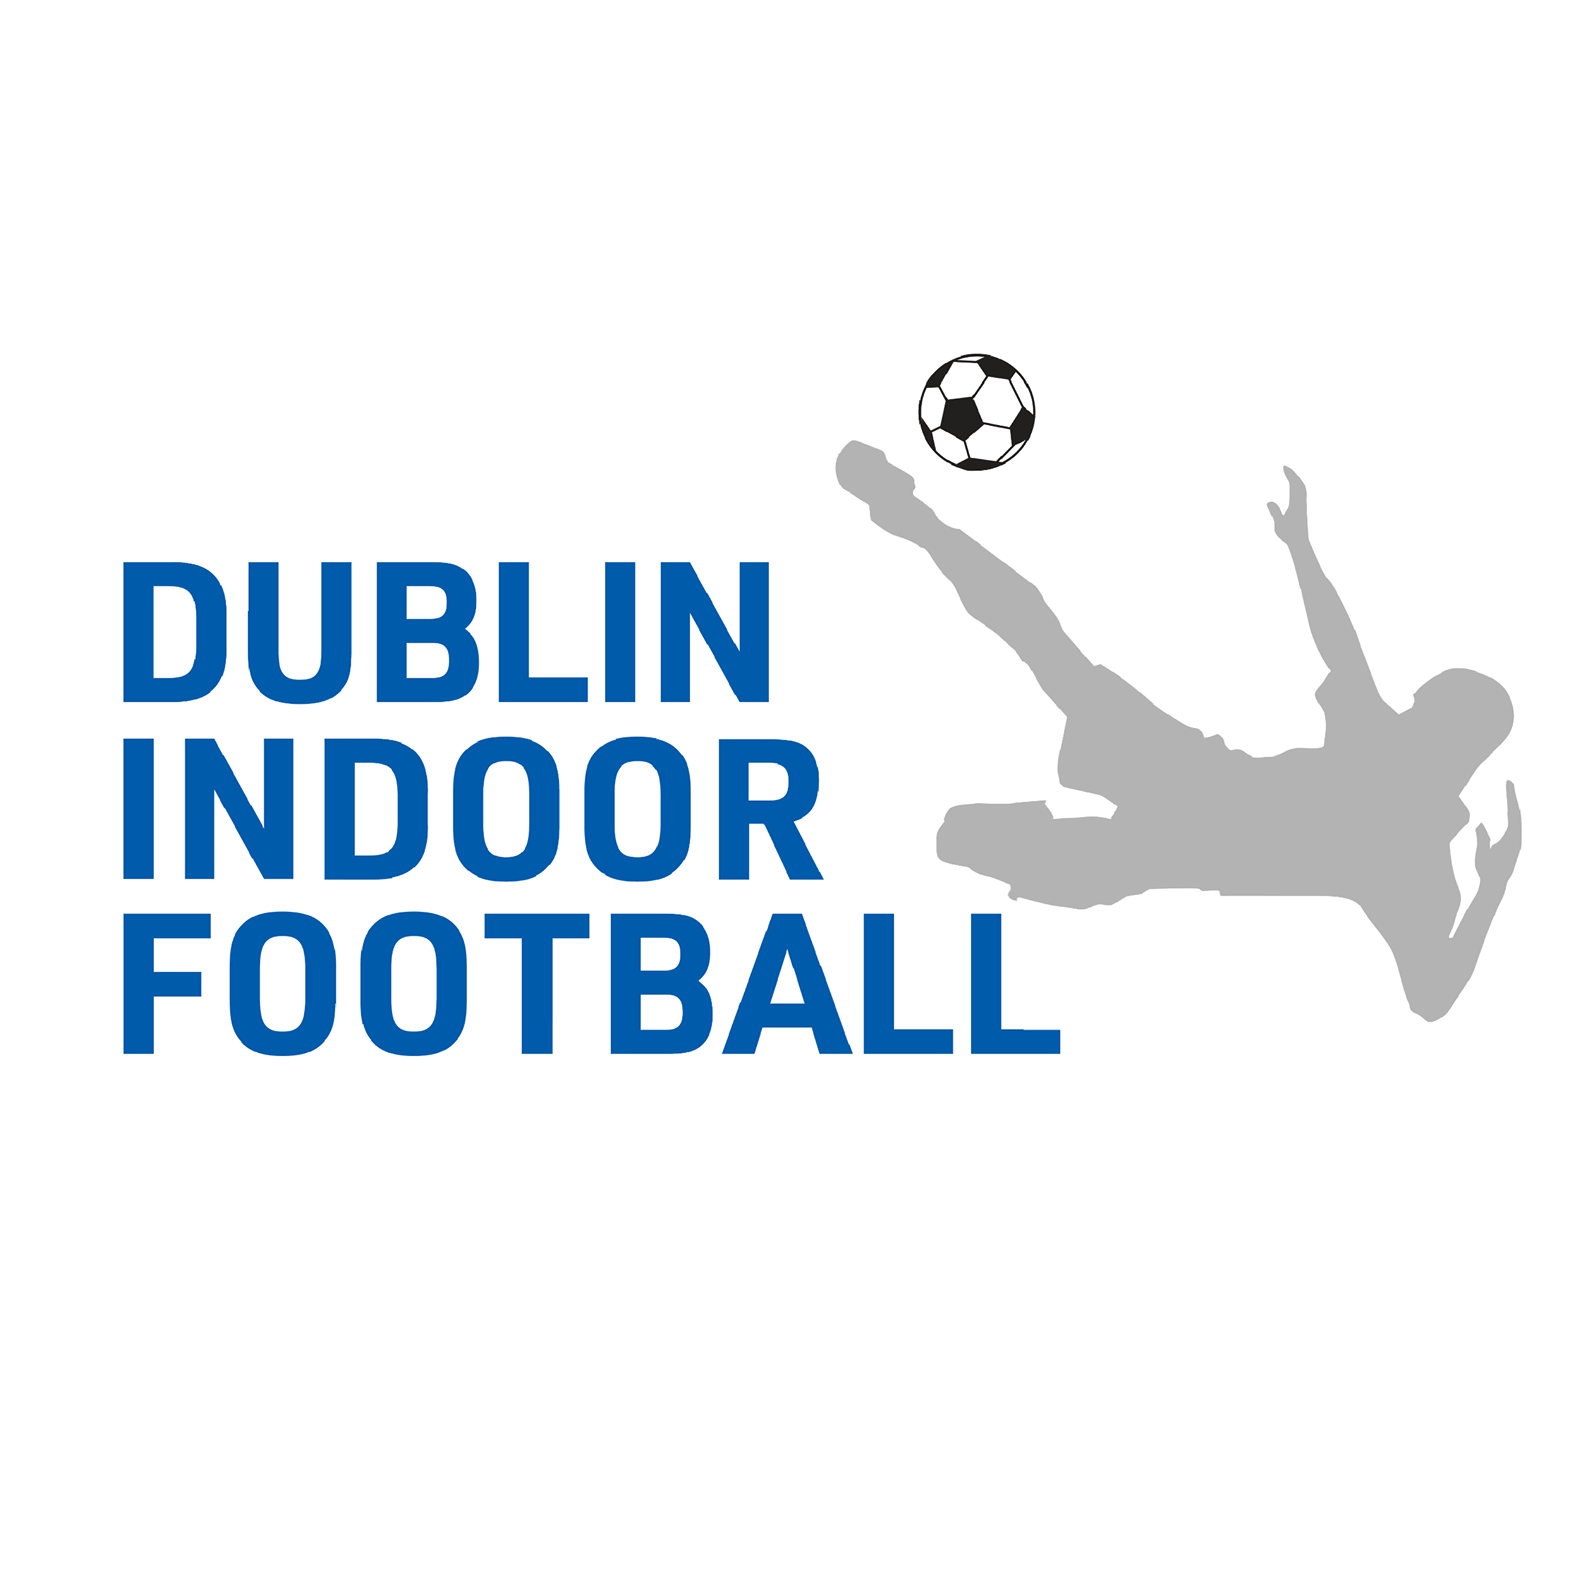 Dublin Indoor Football logo